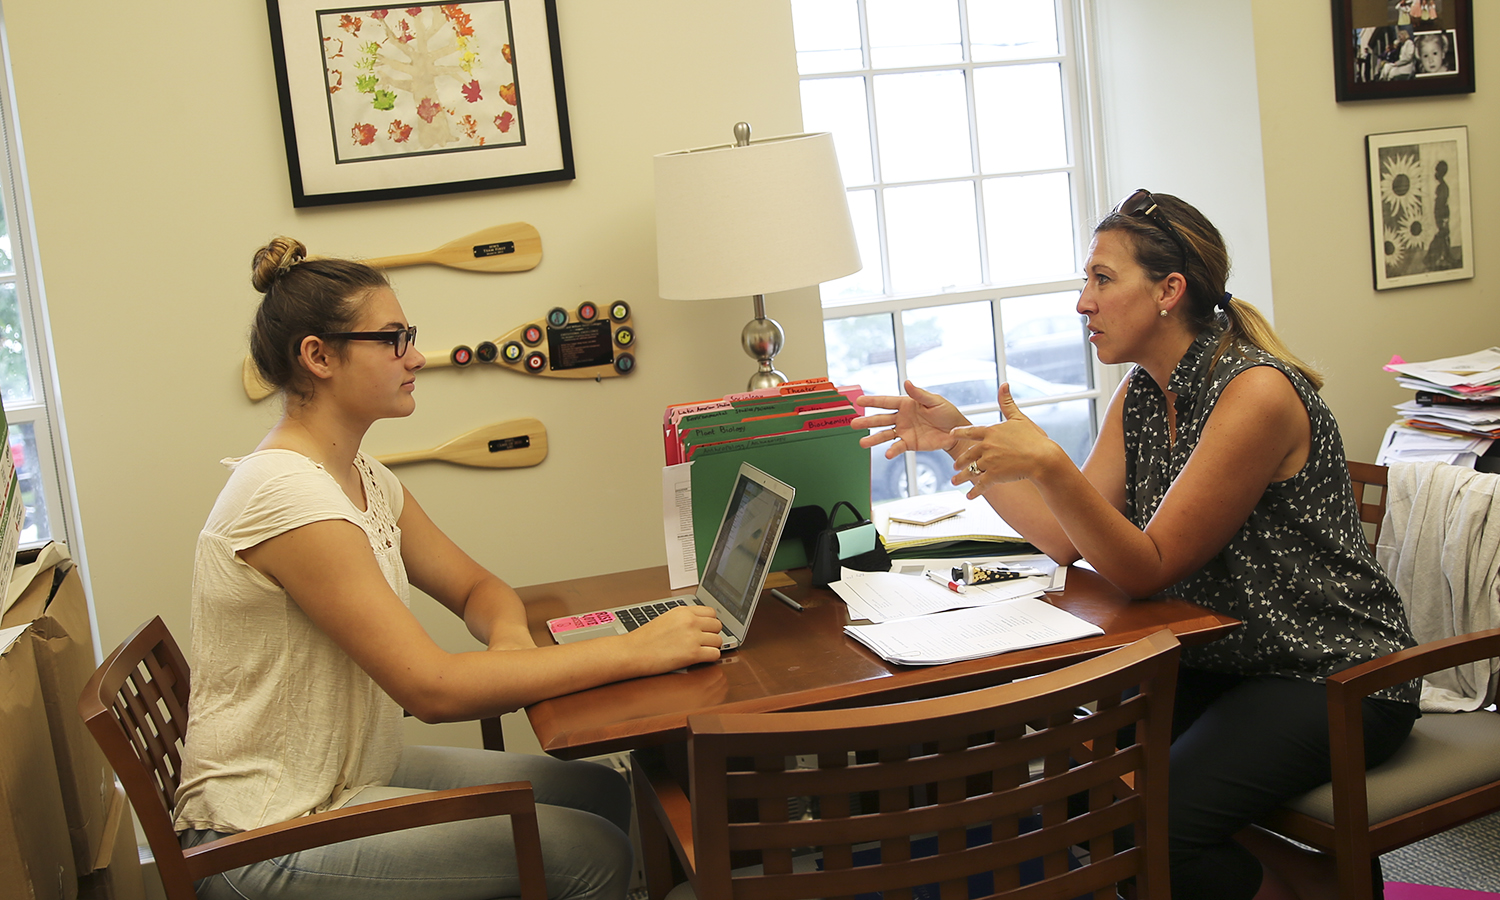 Edie Falk '21 receives advice from Salisbury Center for Career, Professional and Experiential Education Director Brandi Ferrara in Trinity Hall. First-years are encouraged to begin working with the Salisbury Center as soon as possible for one-on-one guidance on networking, internships and post-grad opportunities.